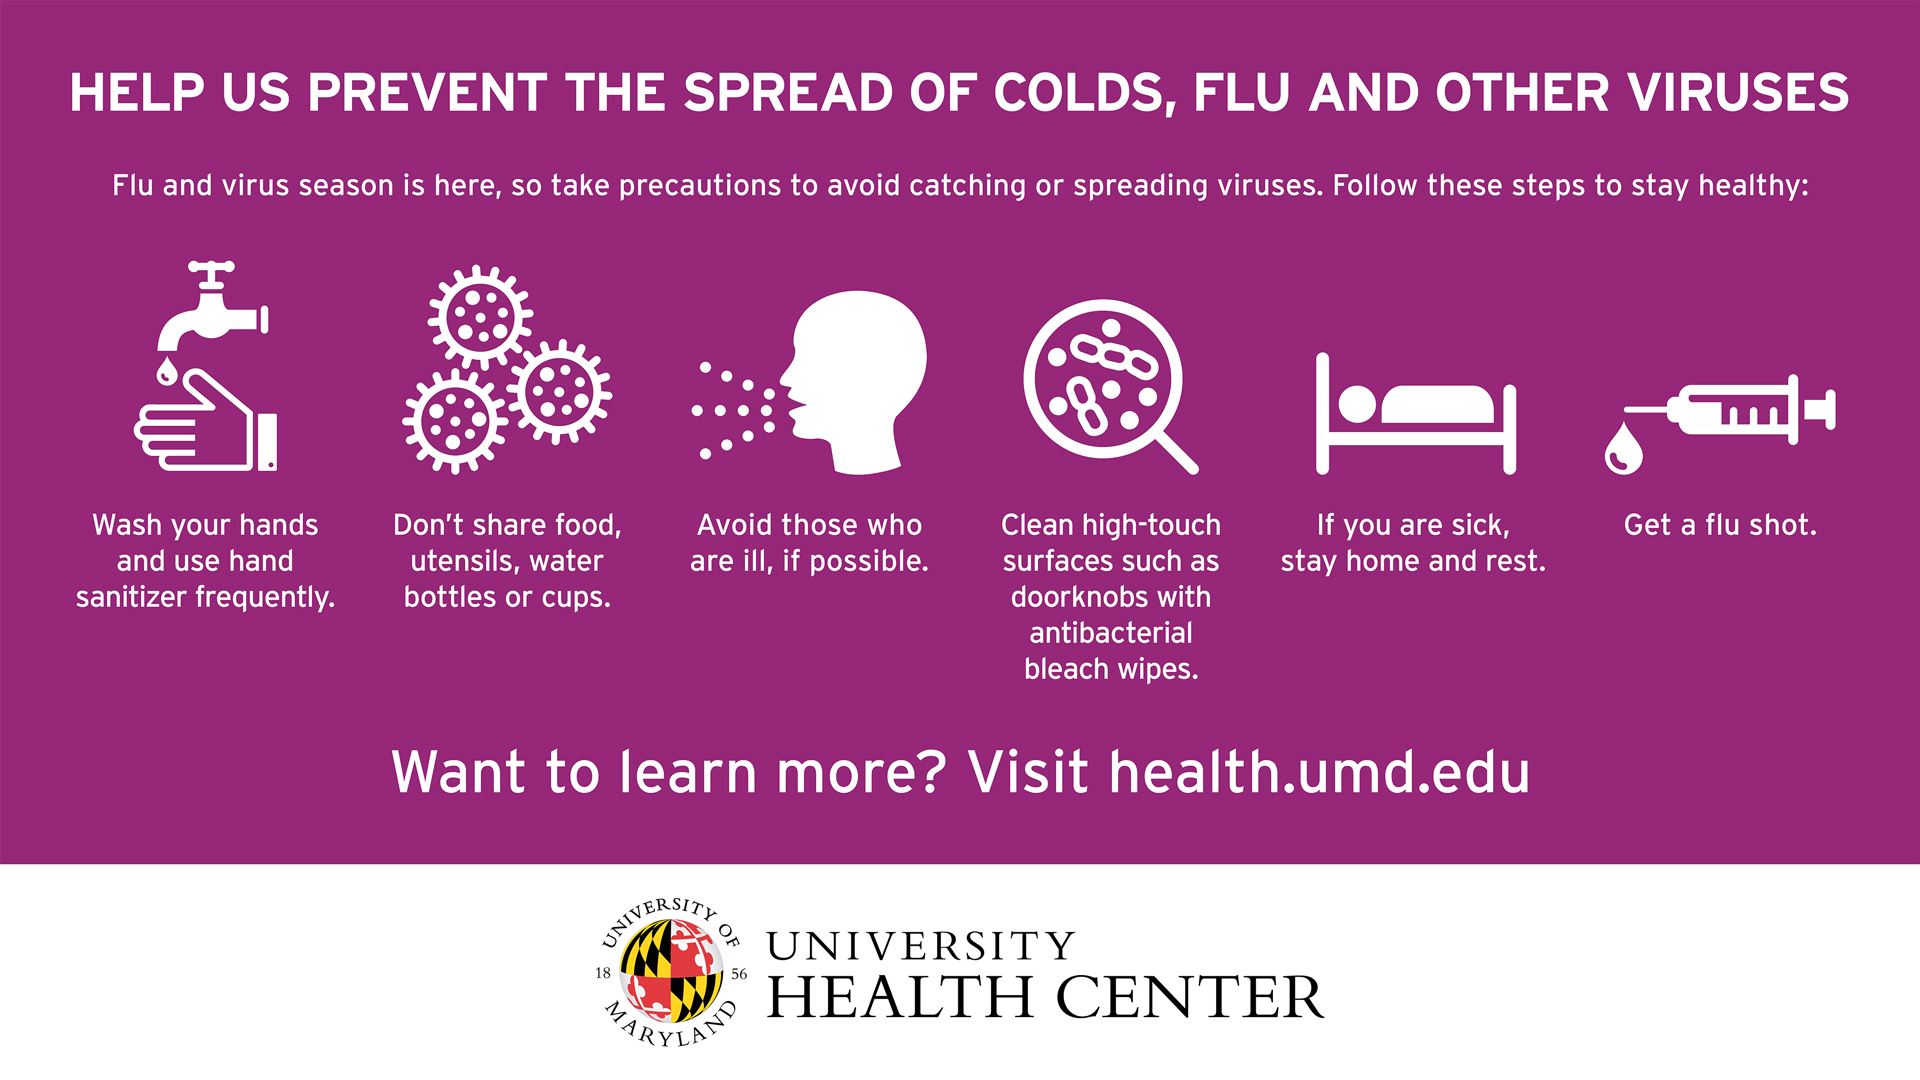 Help us prevent the spread of cold, flu and other viruses. Want to Learn More? Visit health.umd.edu